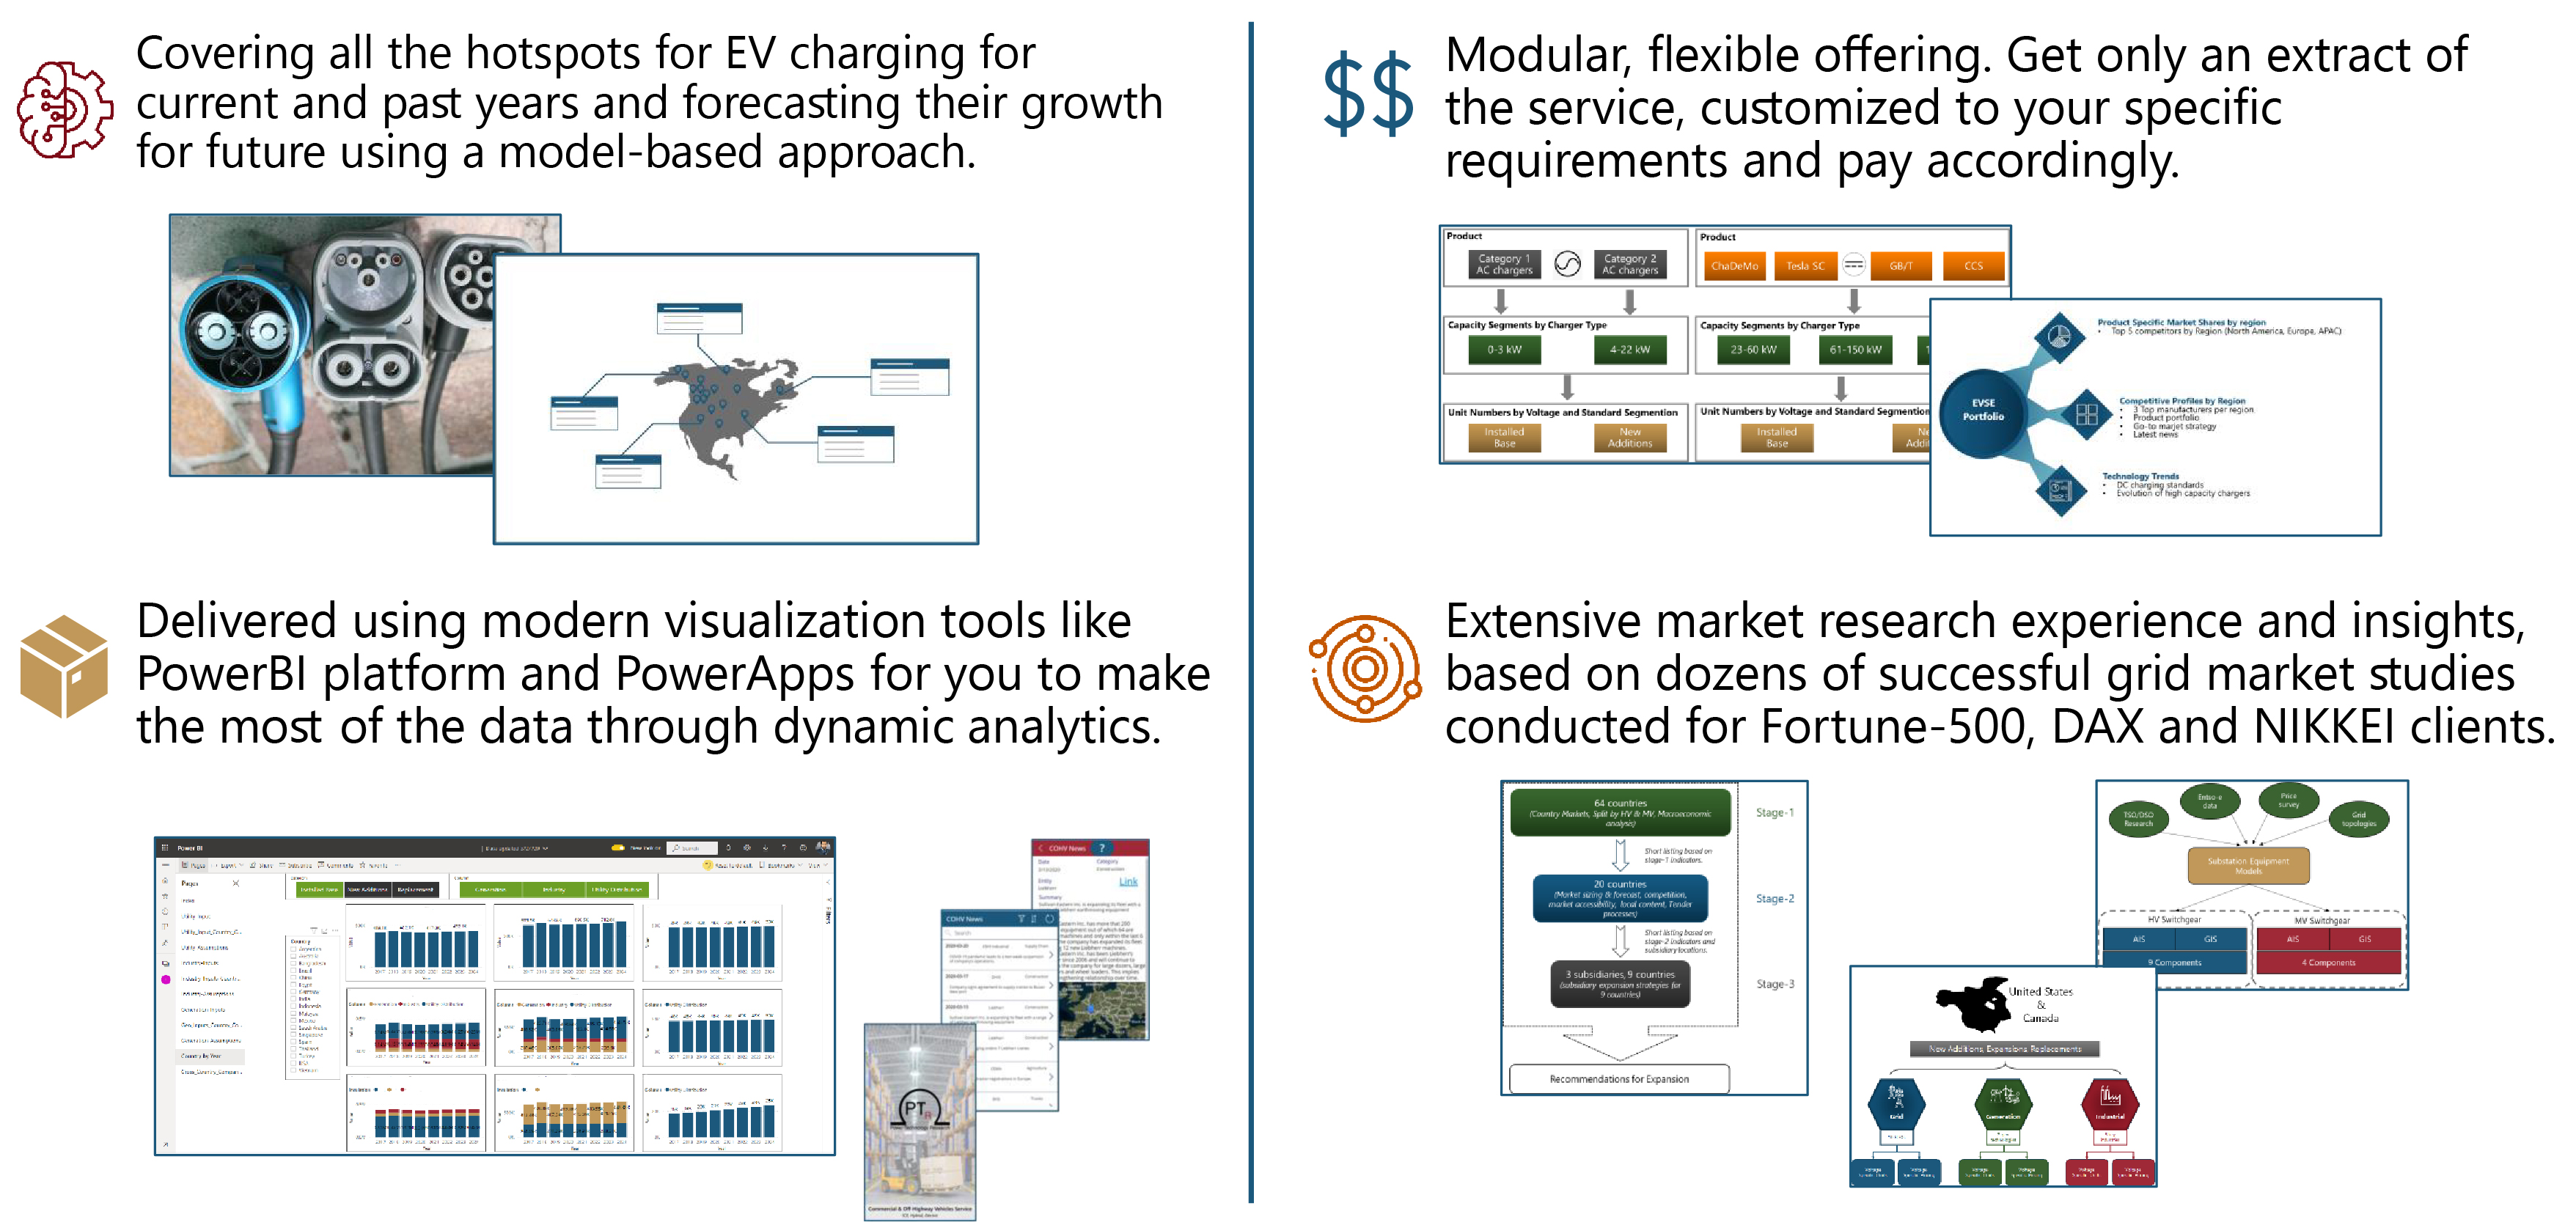 Unique Value of the Service What do we offer you better than our competitors / Covering all the hotspots for EV charging for current and past years and forecasting their growth for future using a model-based approach.  / Modular, flexible offering. Get only an extract of the service, customized to your specific requirements and pay accordingly.  /Delivered using modern visualization tools like PowerBI platform and PowerApps for you to make the most of the data through dynamic analytics.  /Extensive market research experience and insights, based on dozens of successful grid market studies conducted for Fortune-500, DAX and NIKKEI clients.